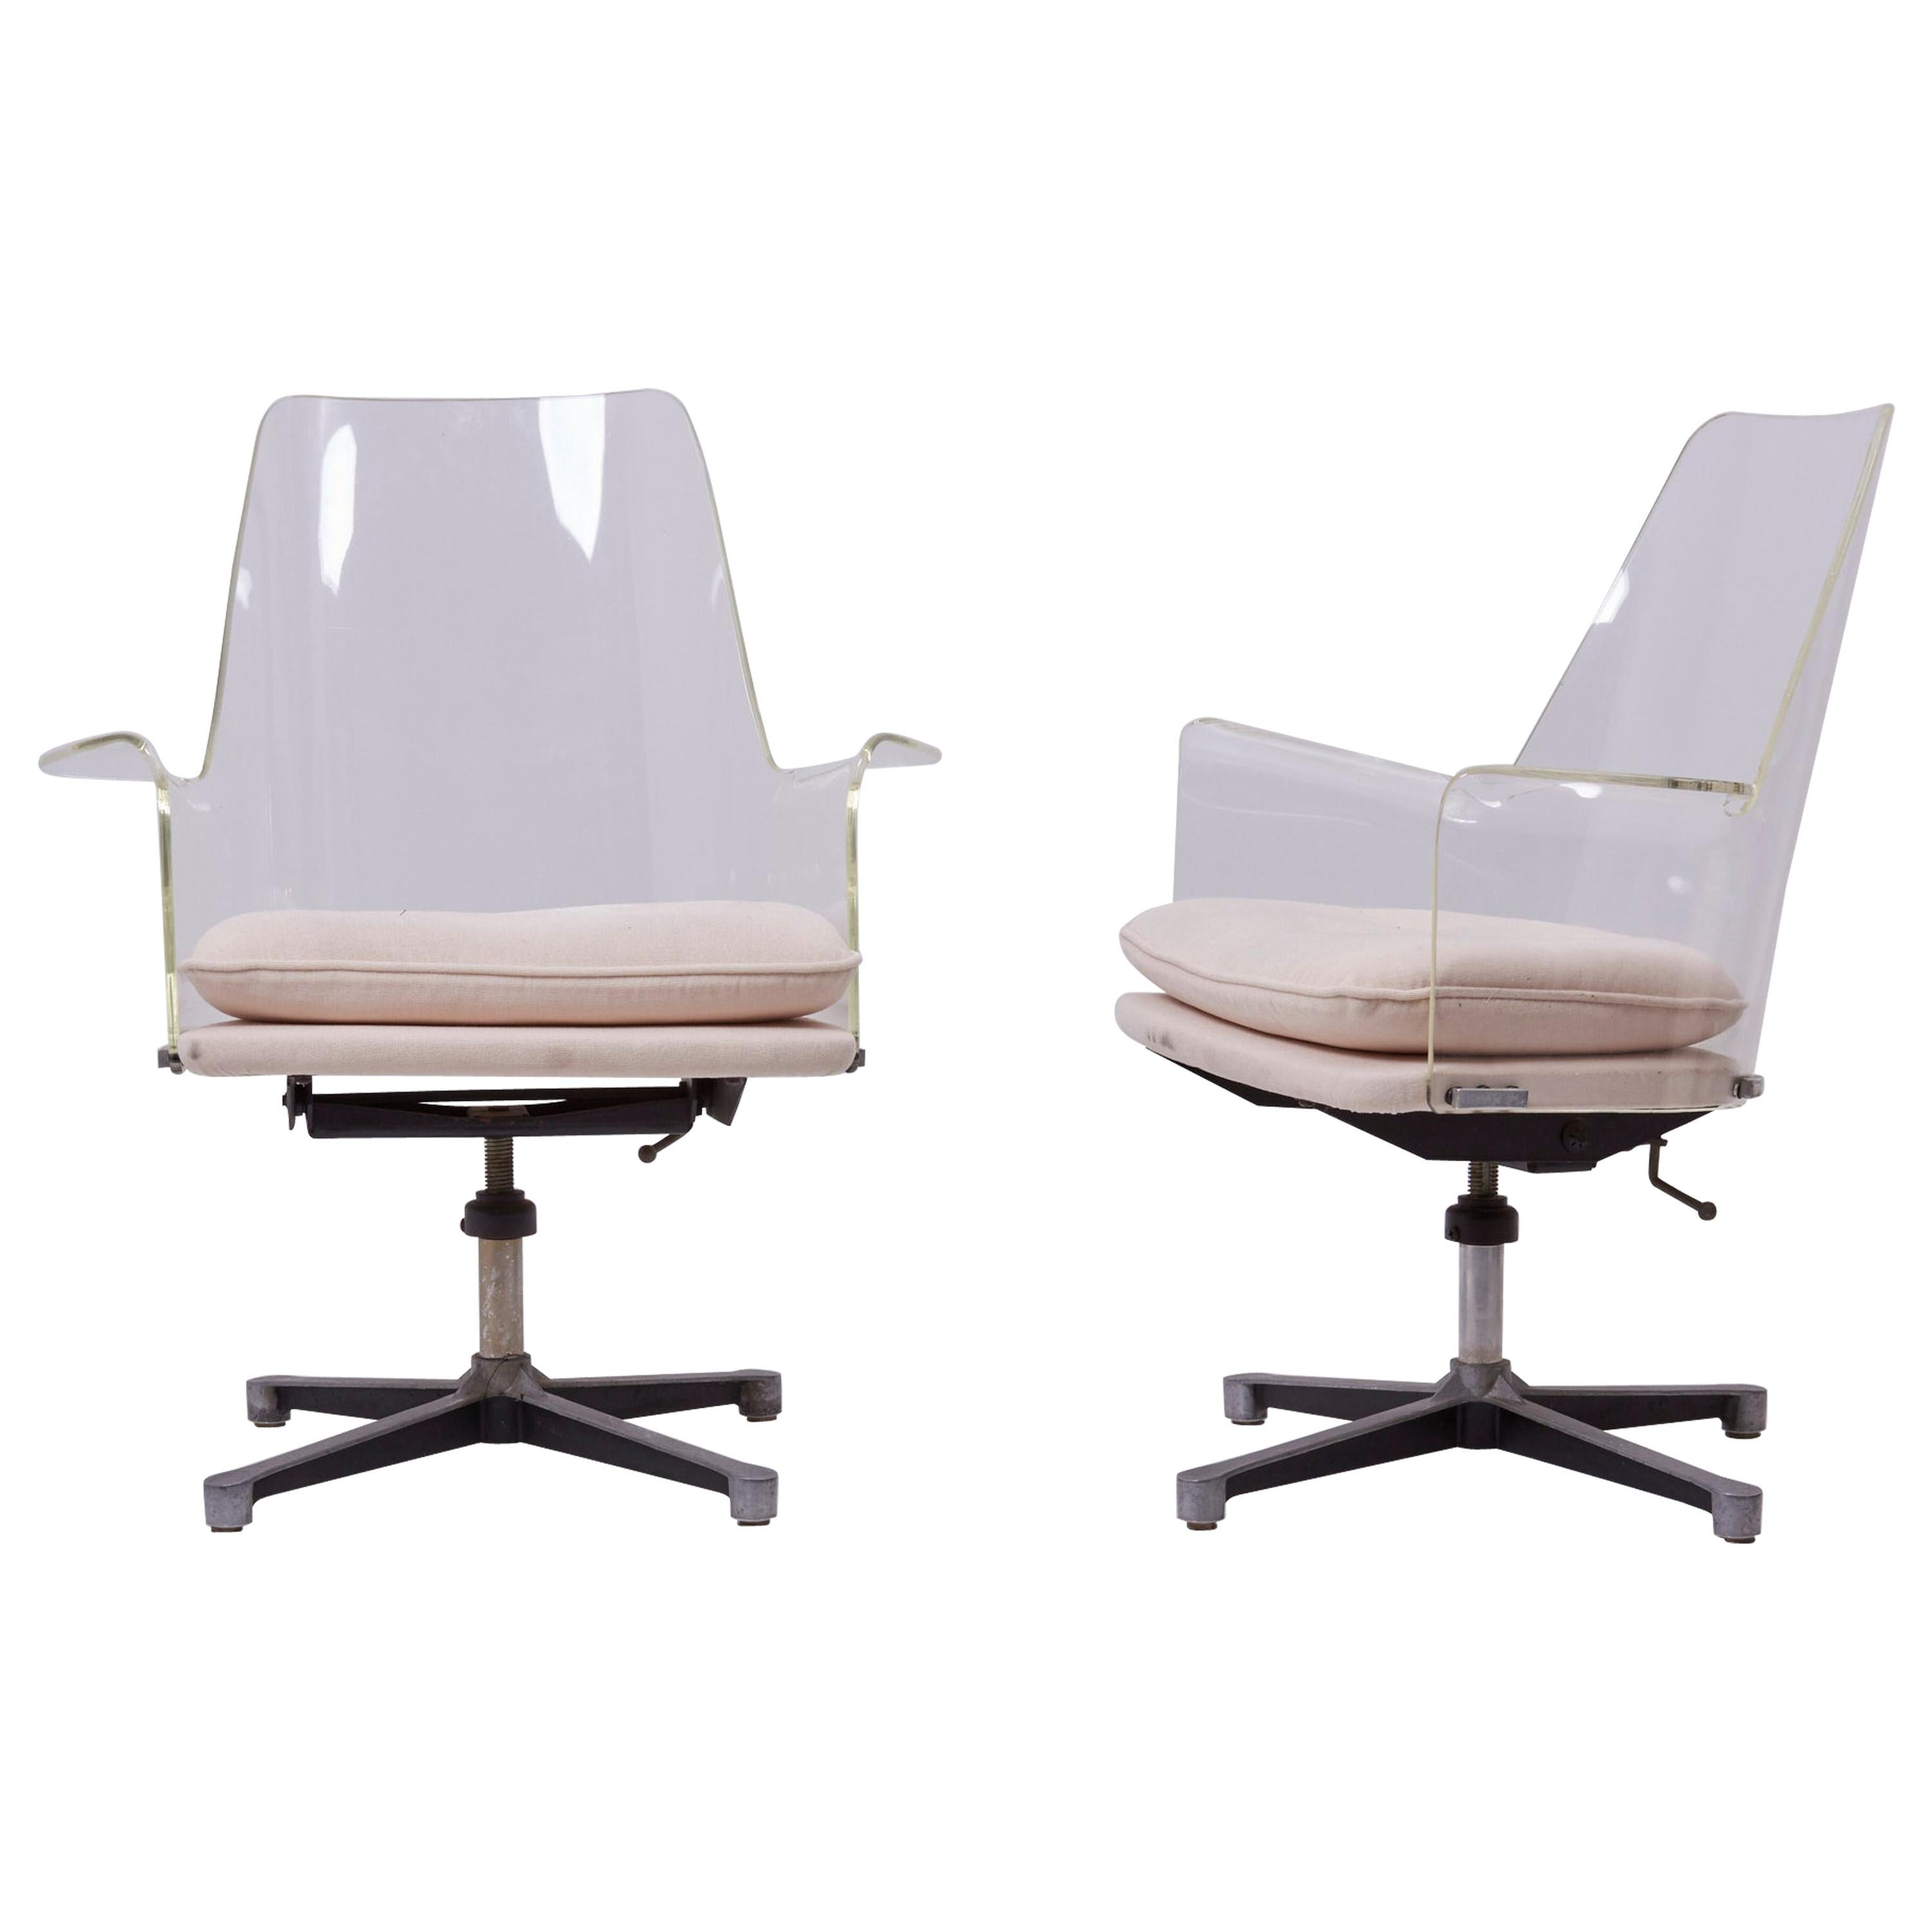 Pair of Swivel Chairs Made of Lucite in Manner of Laverne